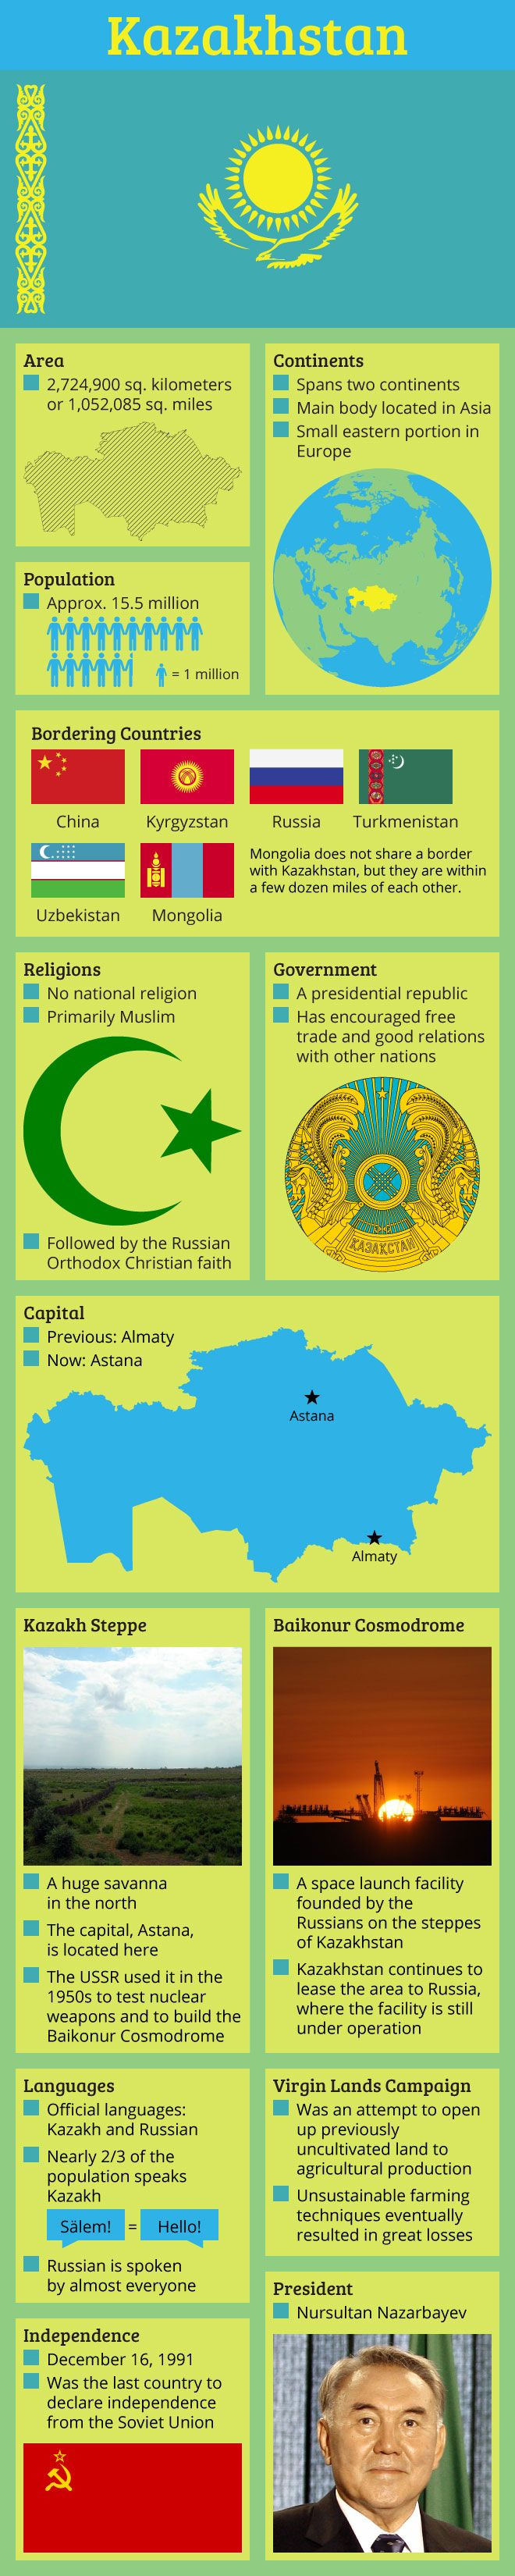 #Infographic of  #Kazakhstan Fast Facts 	http://www.mapsofworld.com/pages/fast-facts/infographic-of-kazakhstan-fast-facts/